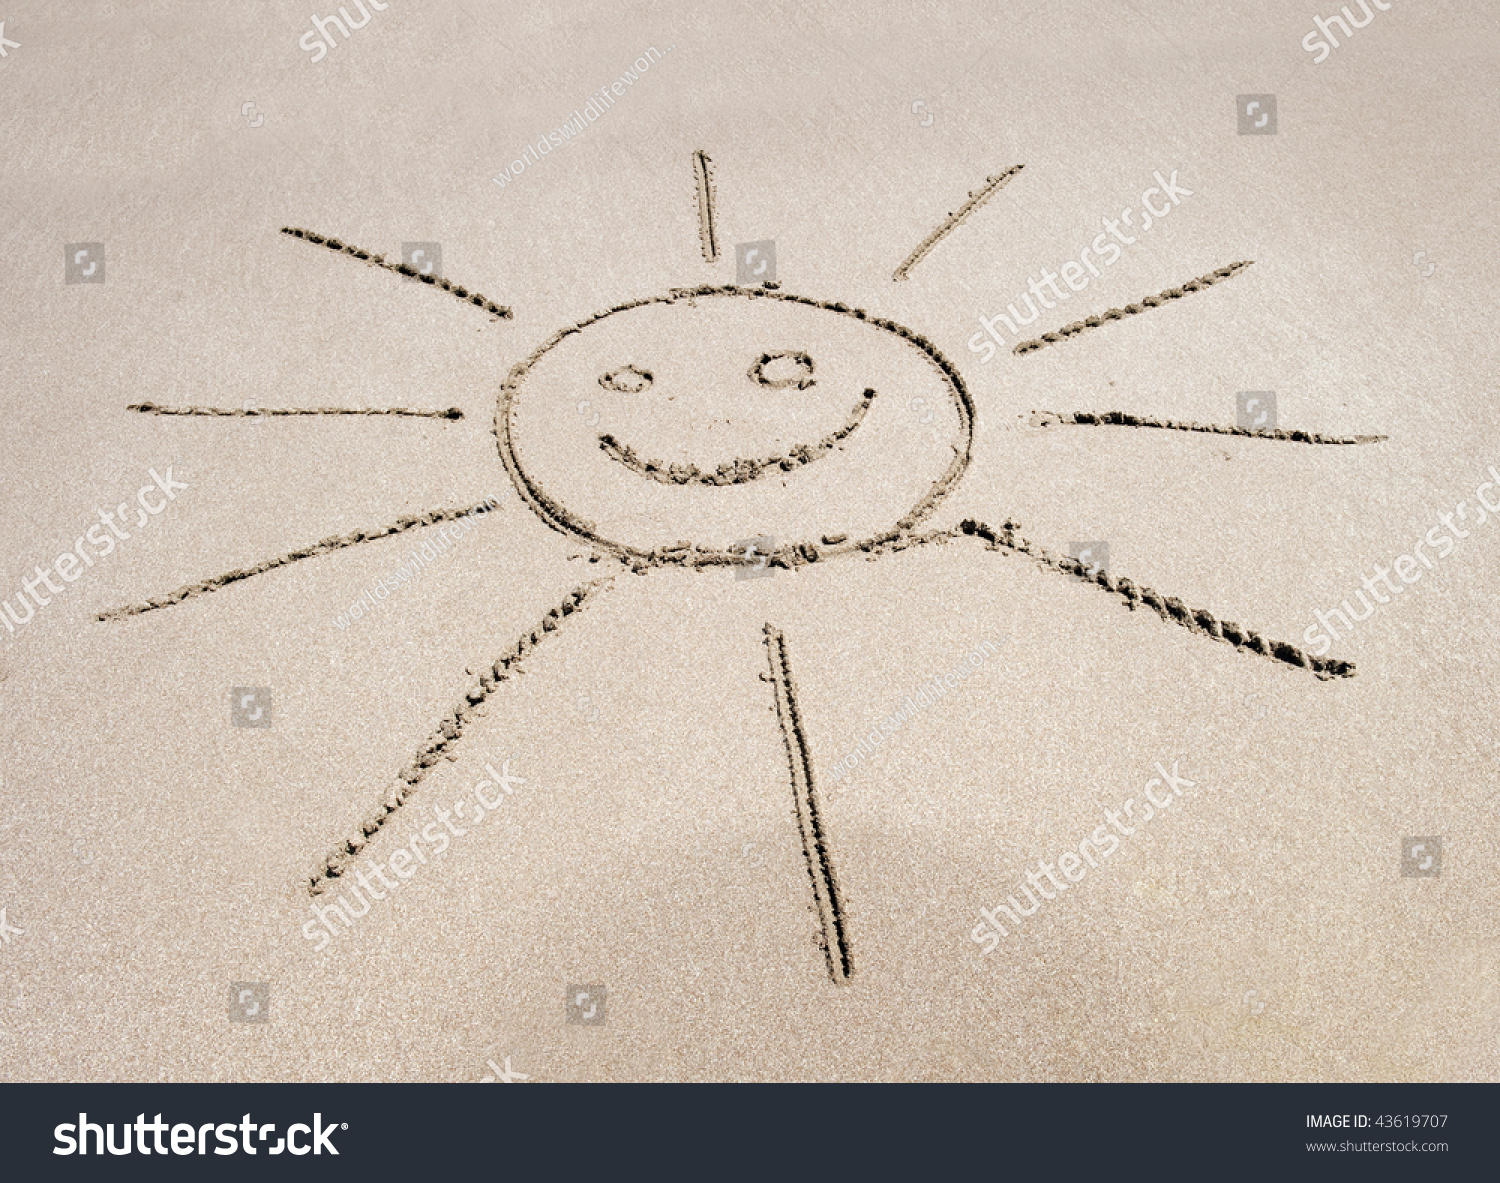 Sun symbol written sand on costa stock photo 43619707 shutterstock sun symbol written in the sand on costa rican tropical beach with smiley face biocorpaavc Images